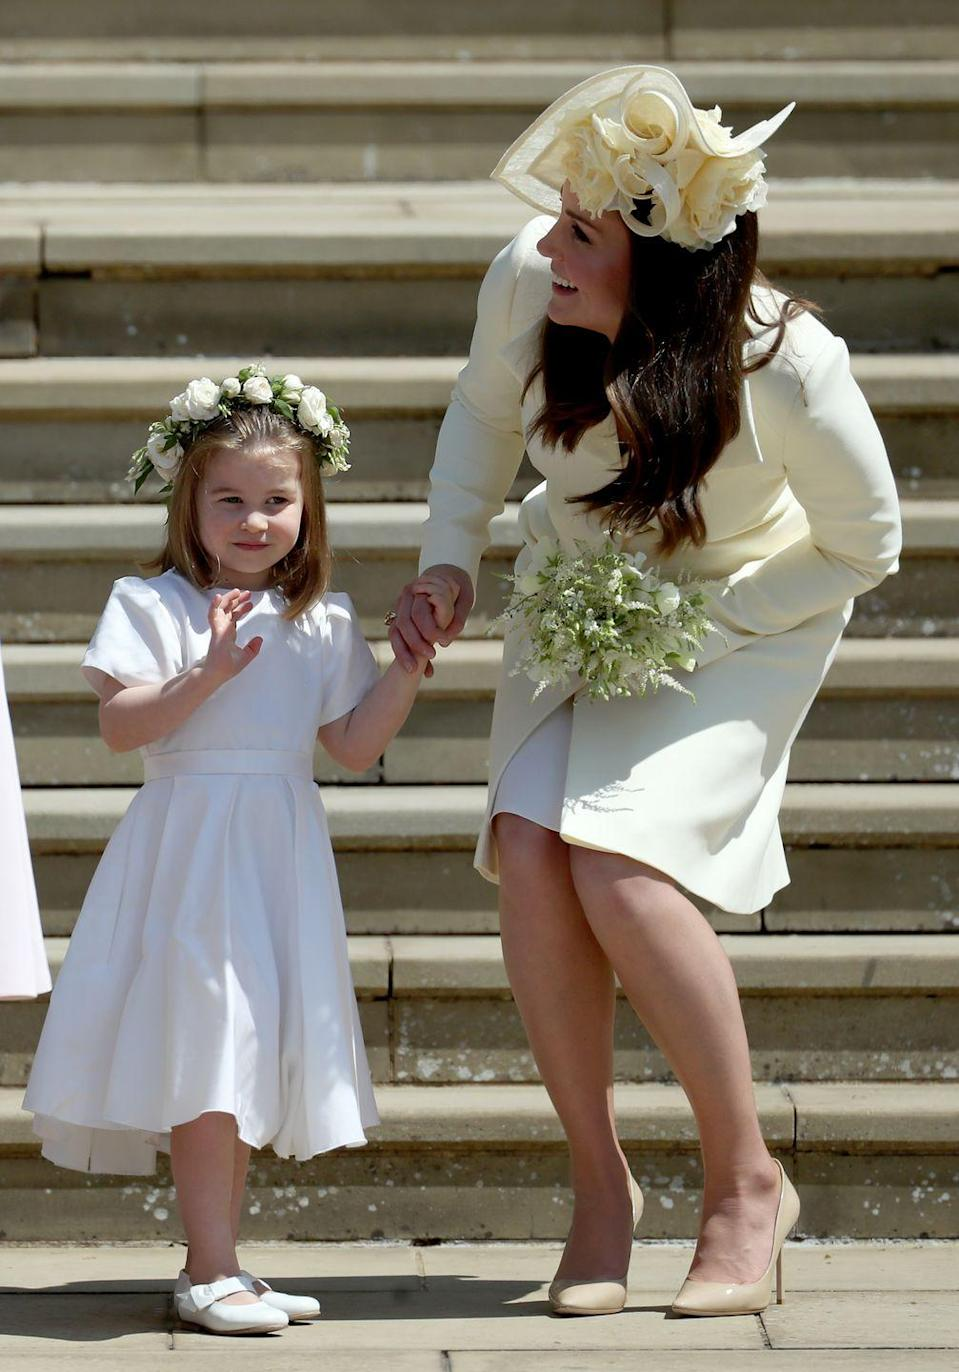 <p>Kate laughed at Princess Charlotte's adorable antics during the royal wedding of Prince Harry and Meghan Markle. Middleton took a backseat from royal duties for this wedding since she gave birth to Louis just a month before.</p>